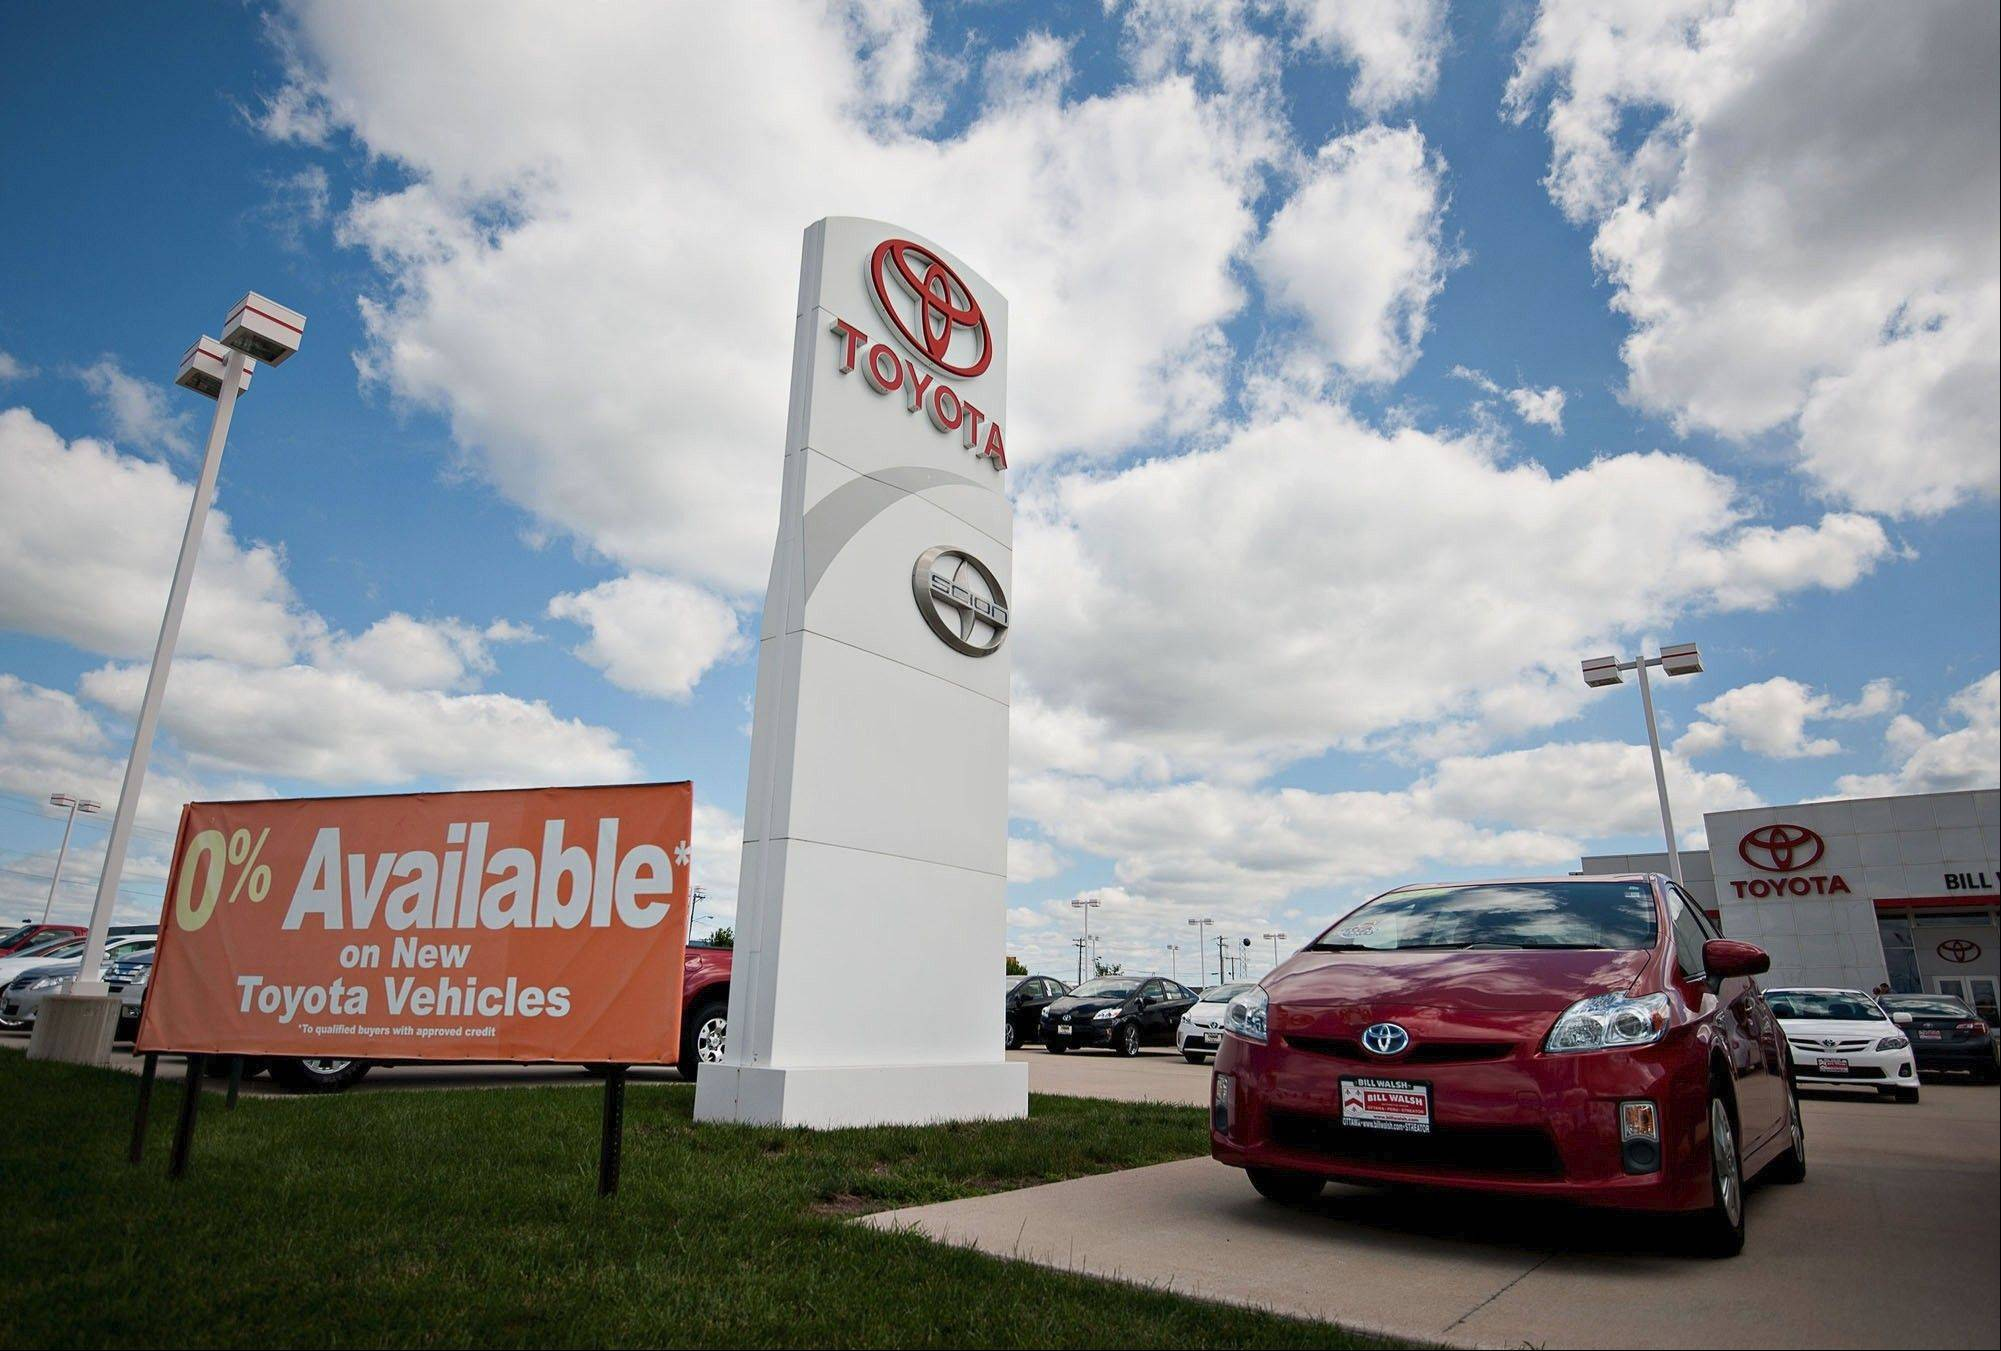 Toyota's in-house lender is leveraging the automaker's AA- credit rating and cash to offer low rates and keep customers coming back.